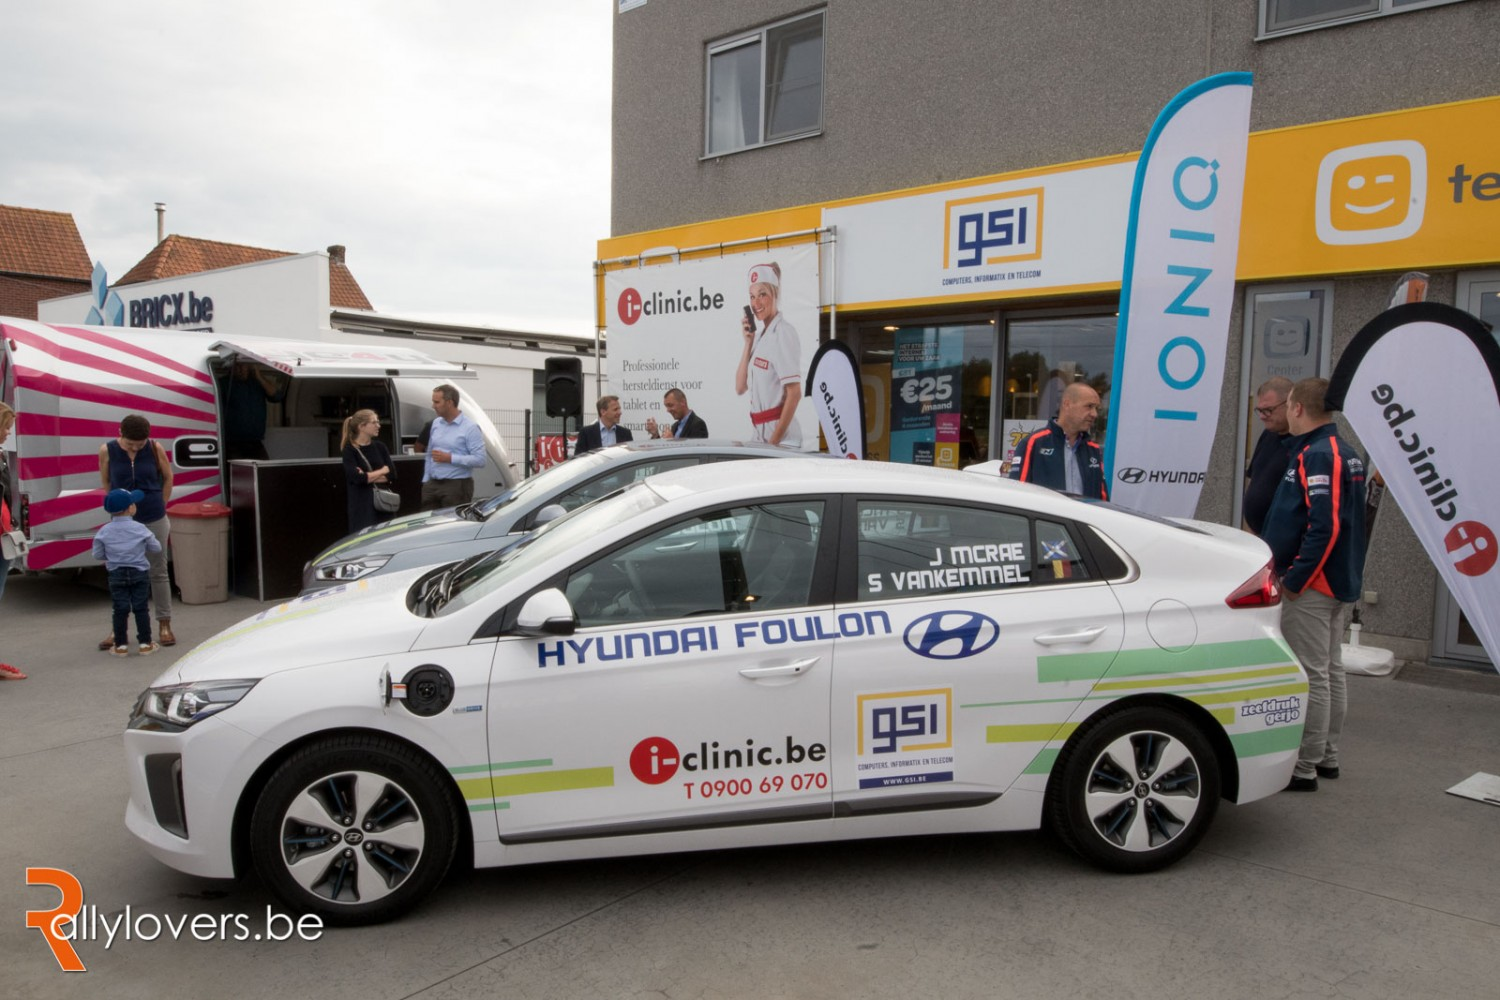 Voorstelling Hyundai's E-Rally bij GSI en i-clinic in Roeselare